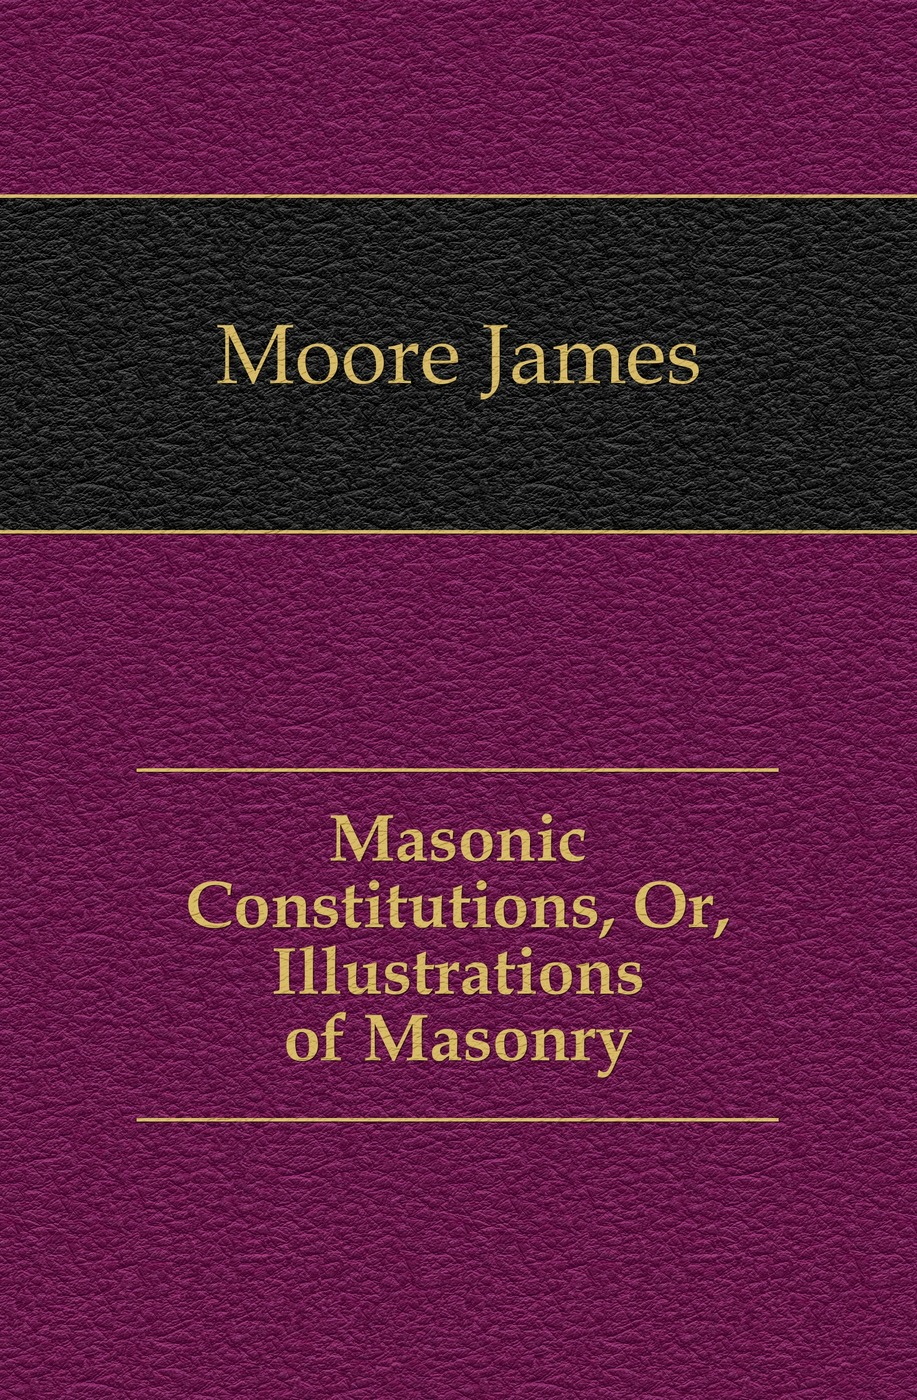 Moore James Masonic Constitutions, Or, Illustrations of Masonry цена и фото